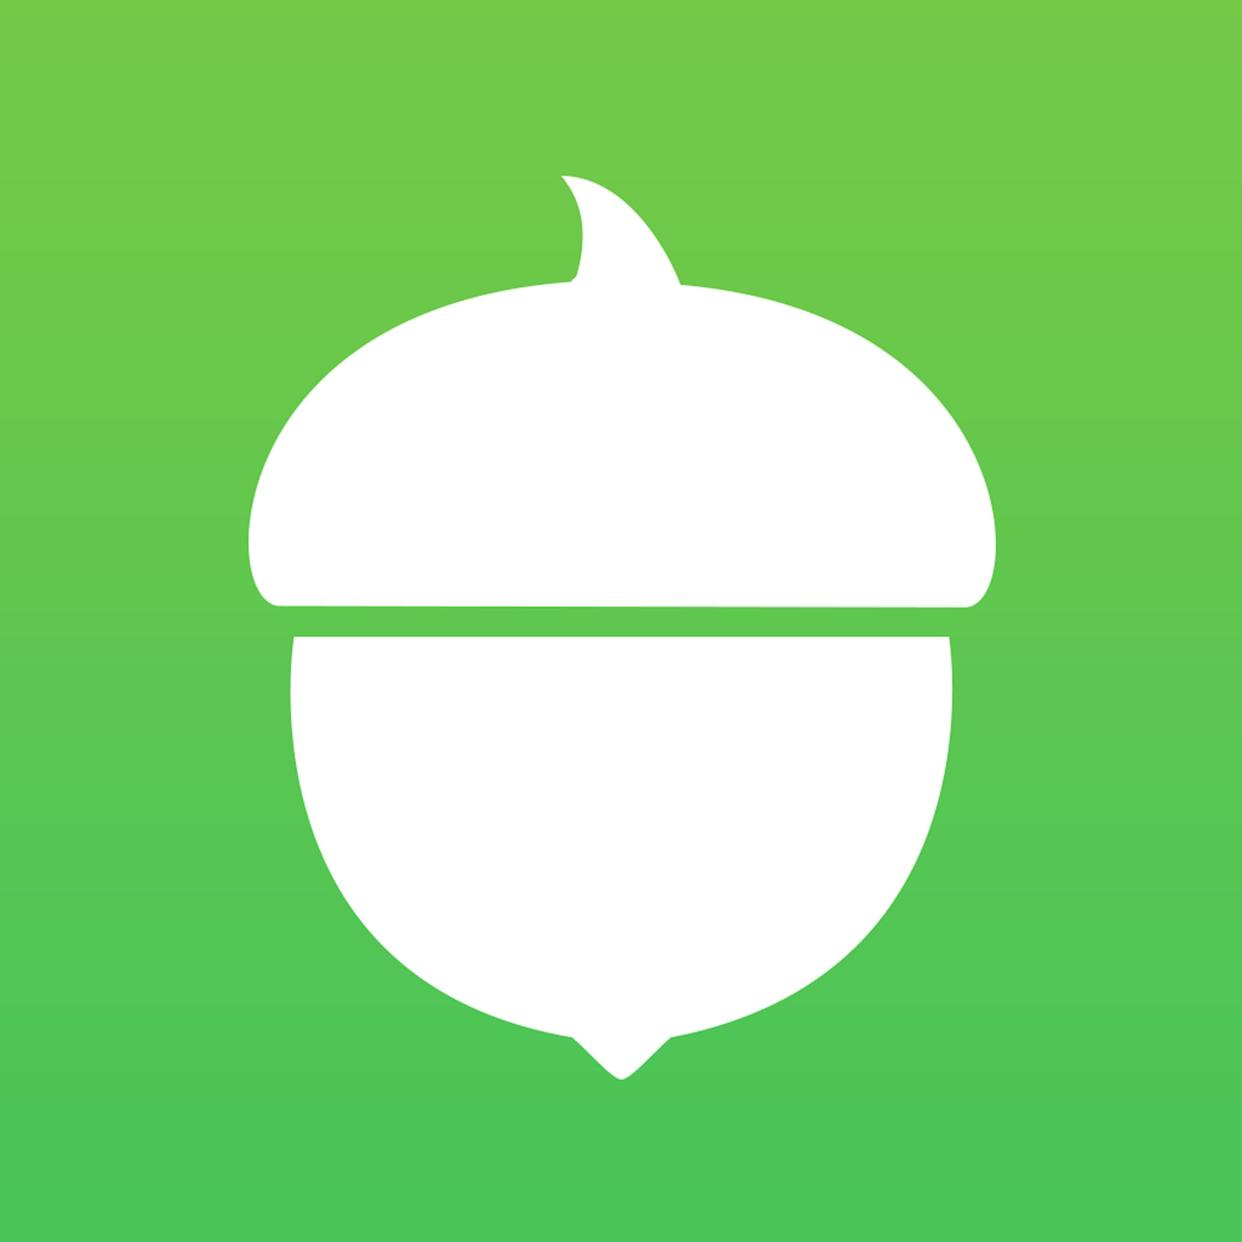 "<strong>What it does:&nbsp;</strong><a href=""https://www.acorns.com/"" rel=""nofollow noopener"" target=""_blank"" data-ylk=""slk:Acorns"" class=""link rapid-noclick-resp"">Acorns</a>&nbsp;rounds up the cost of your purchases to the nearest dollar and transfers the difference from your checking account into an Acorns account. Then, it invests that money in low-cost exchange traded funds, or ETFs.<br><strong>What it costs:</strong>&nbsp;Free to try, then&nbsp;$1 a month (or 0.25 percent a year for larger accounts); also&nbsp;free for college students and anyone under age 24"